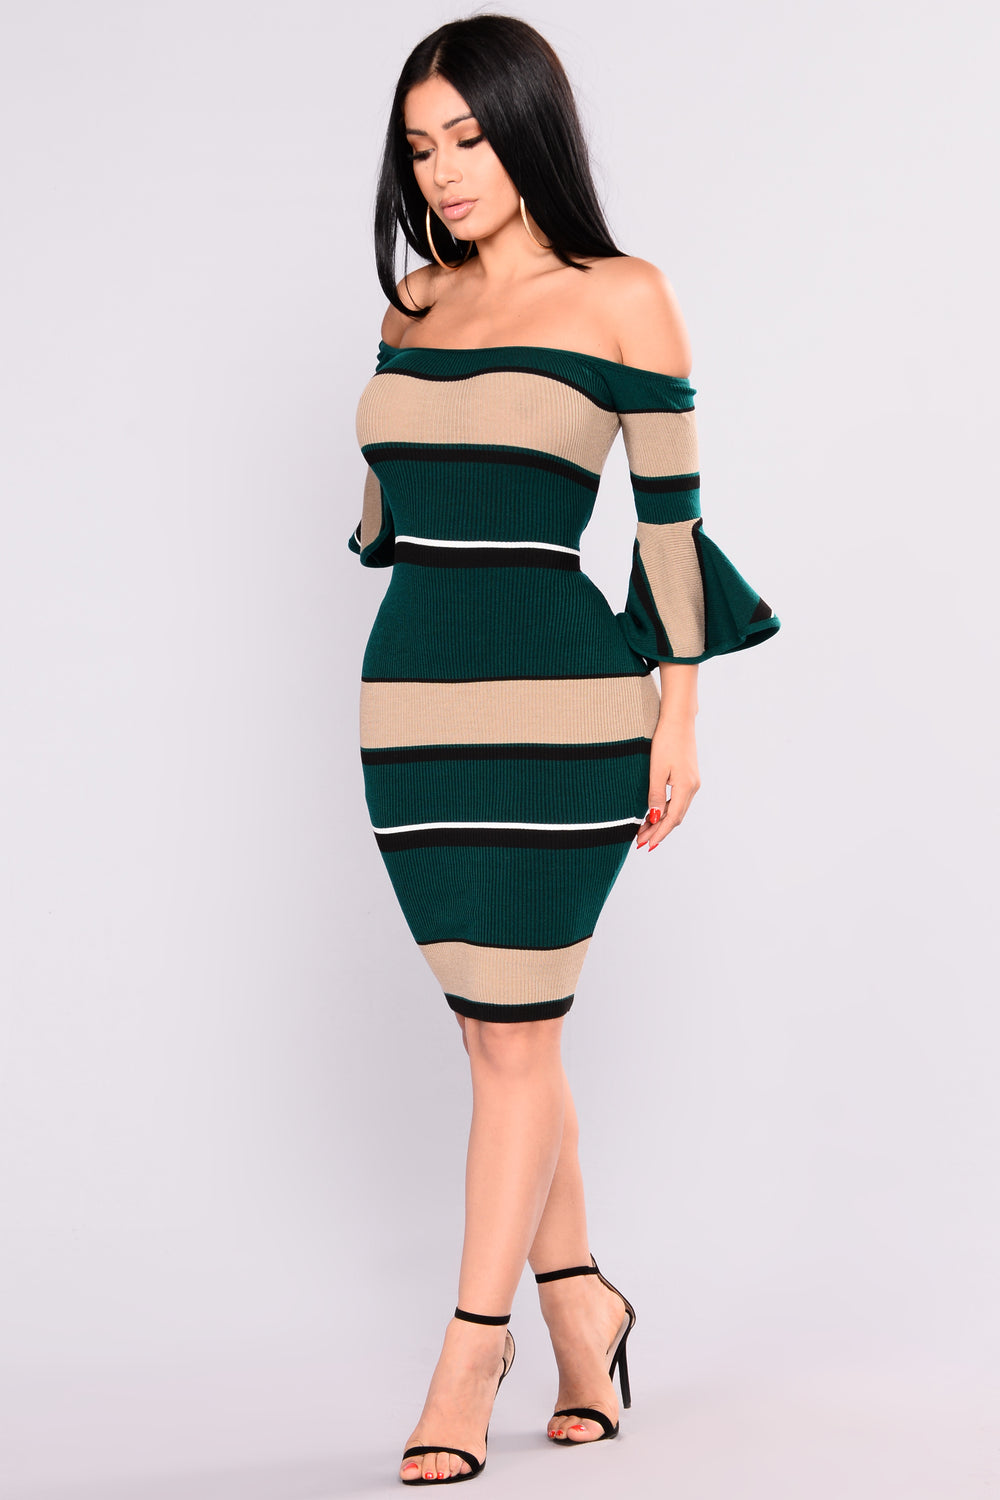 Atlanta Striped Dress - Teal